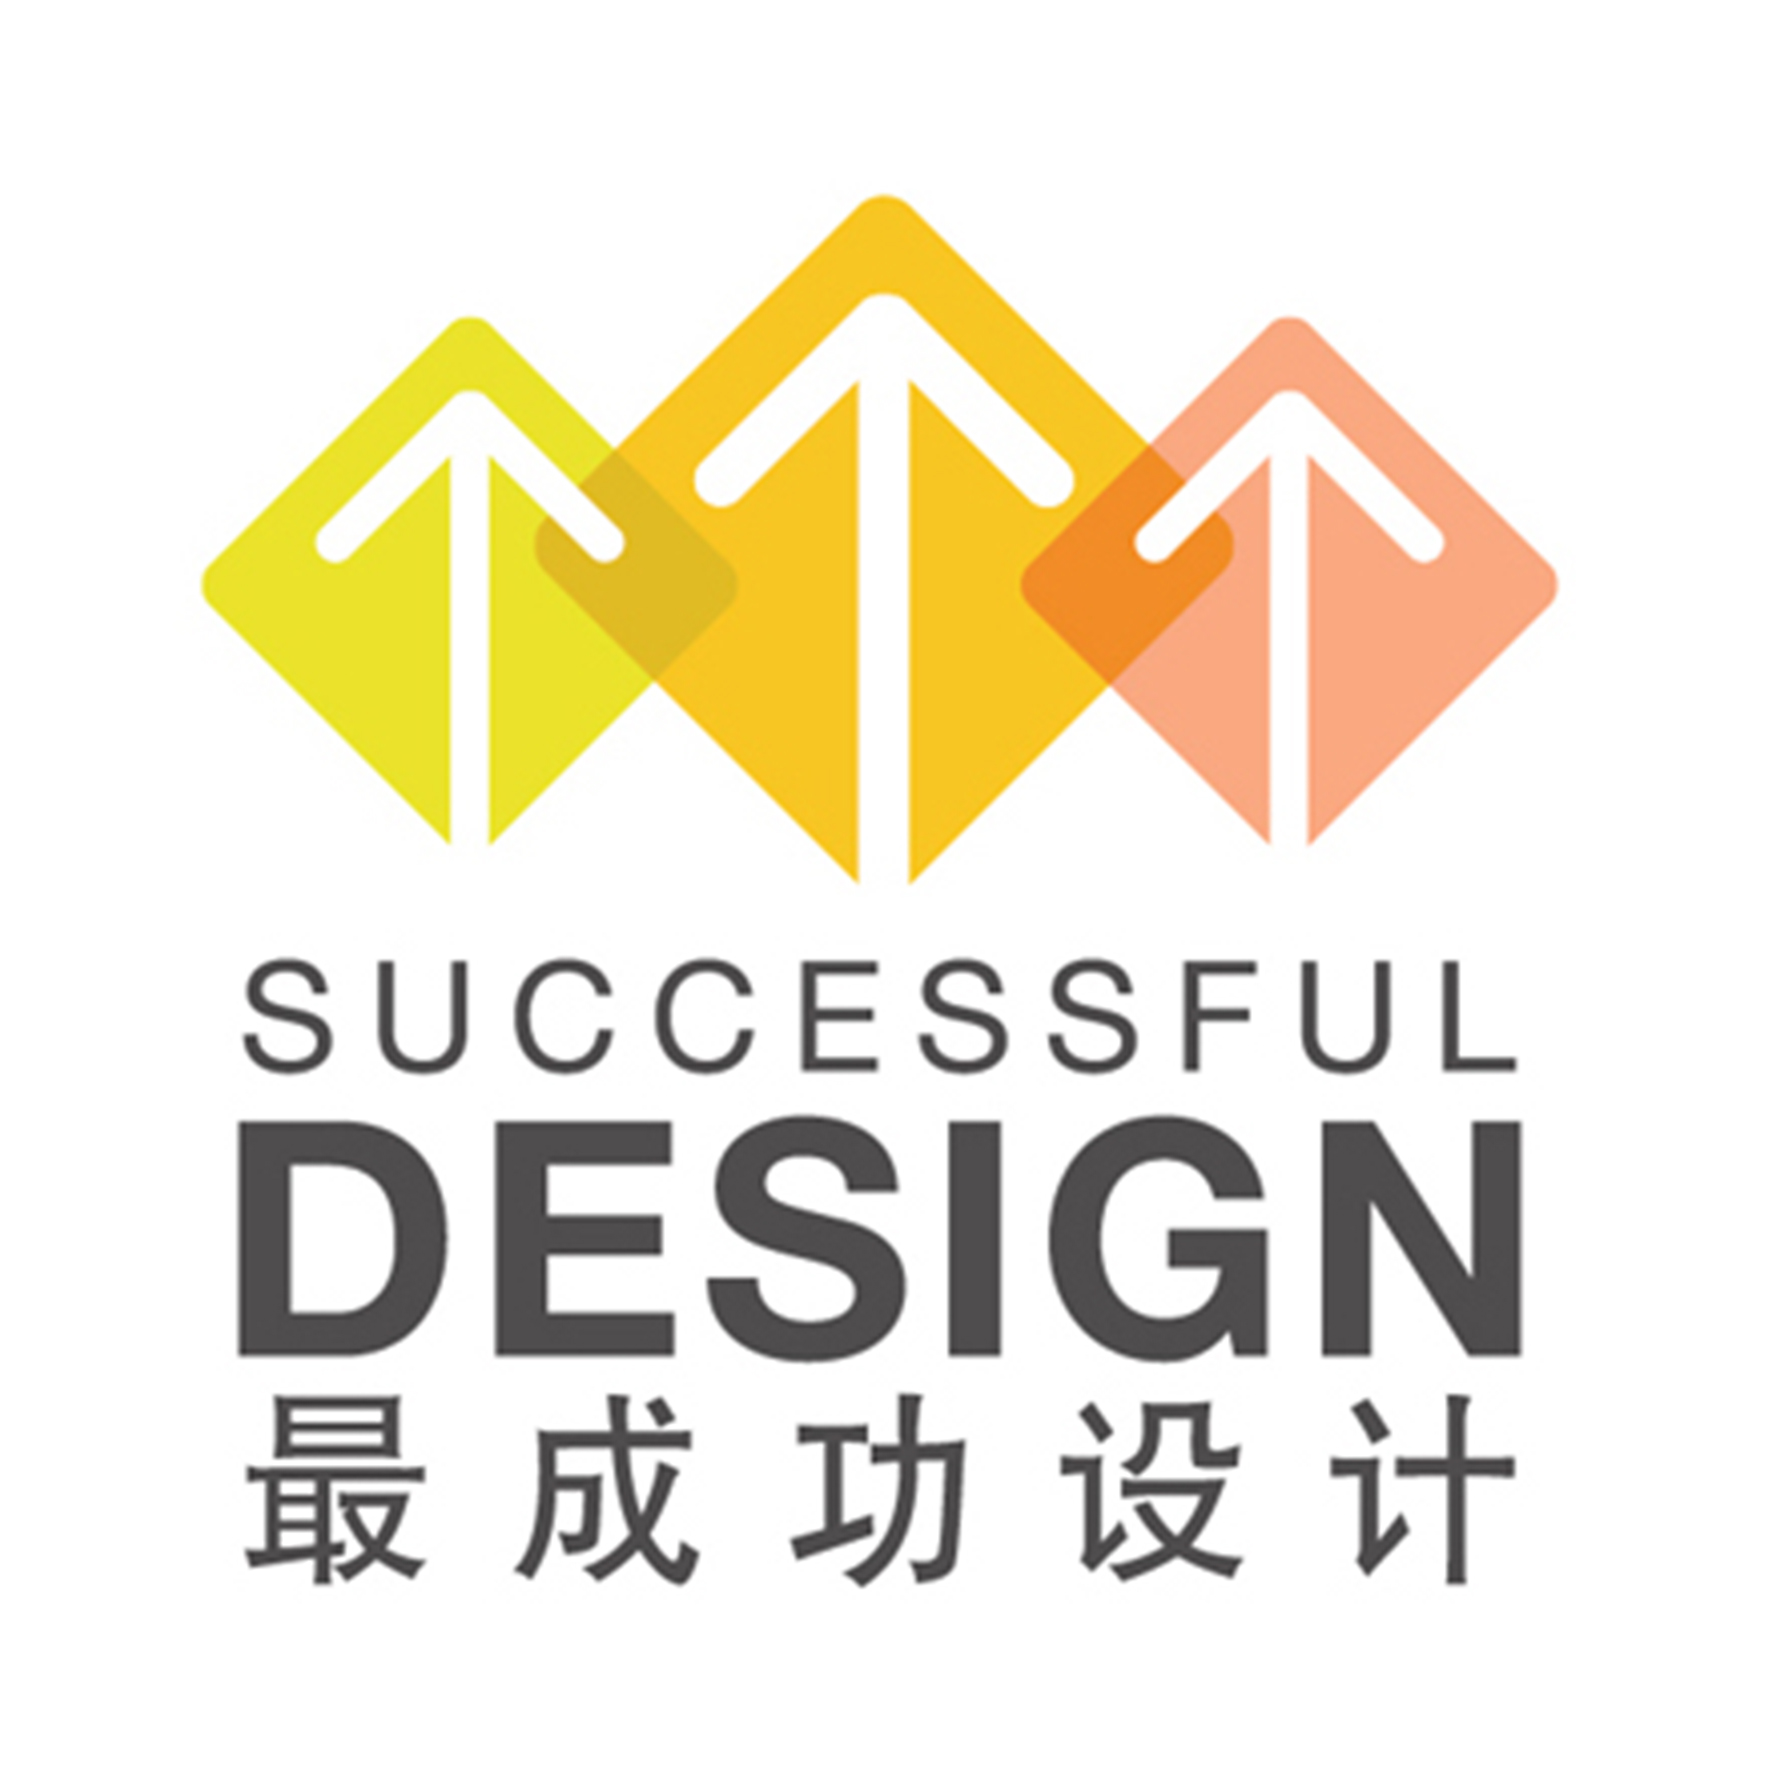 Successful Design Award - SPACE, China's Successful Design Award 2016